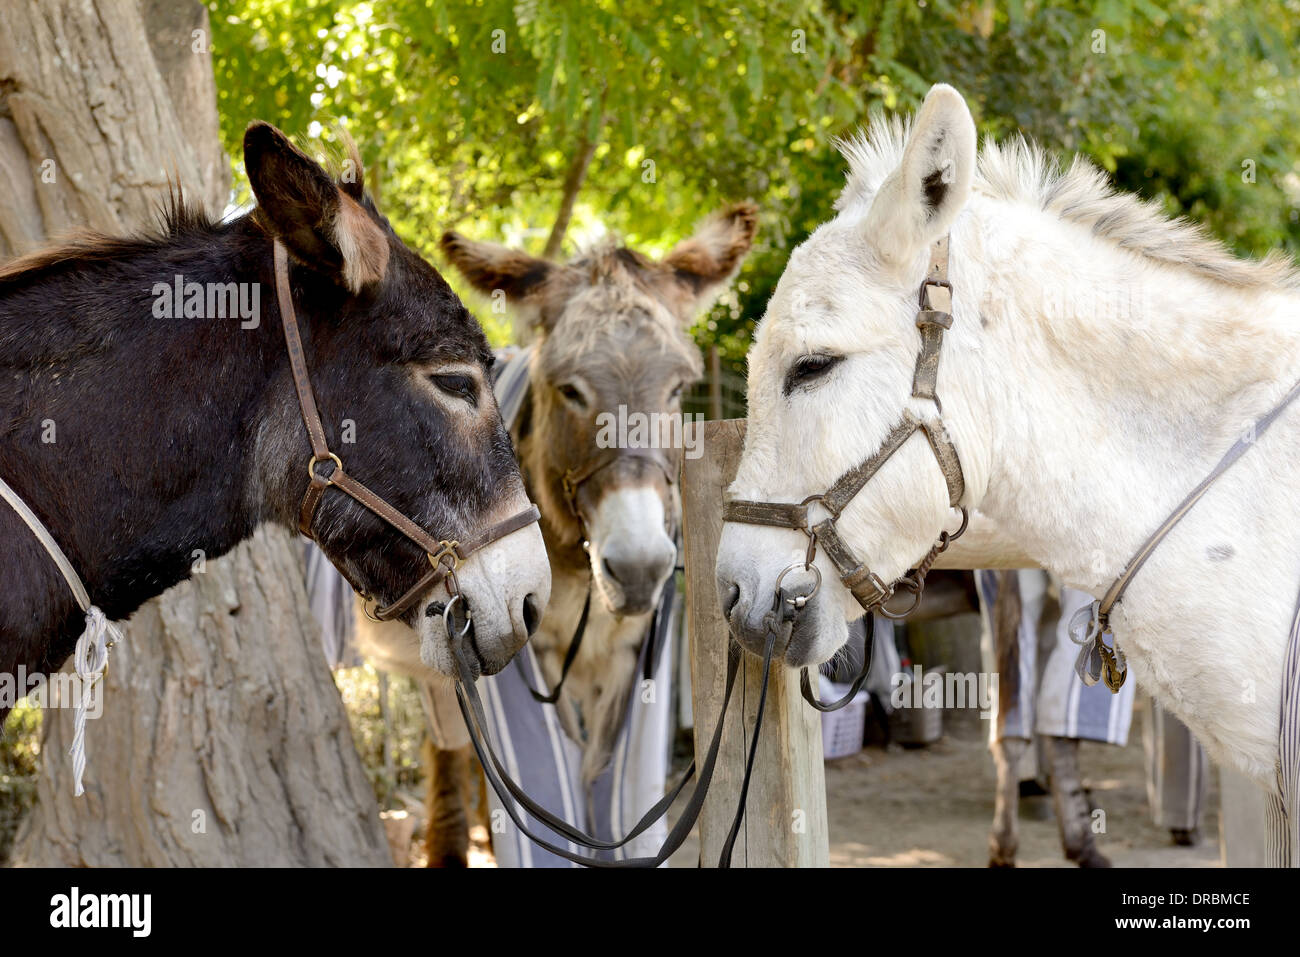 three donkeys coming together for a meeting head to head - Stock Image